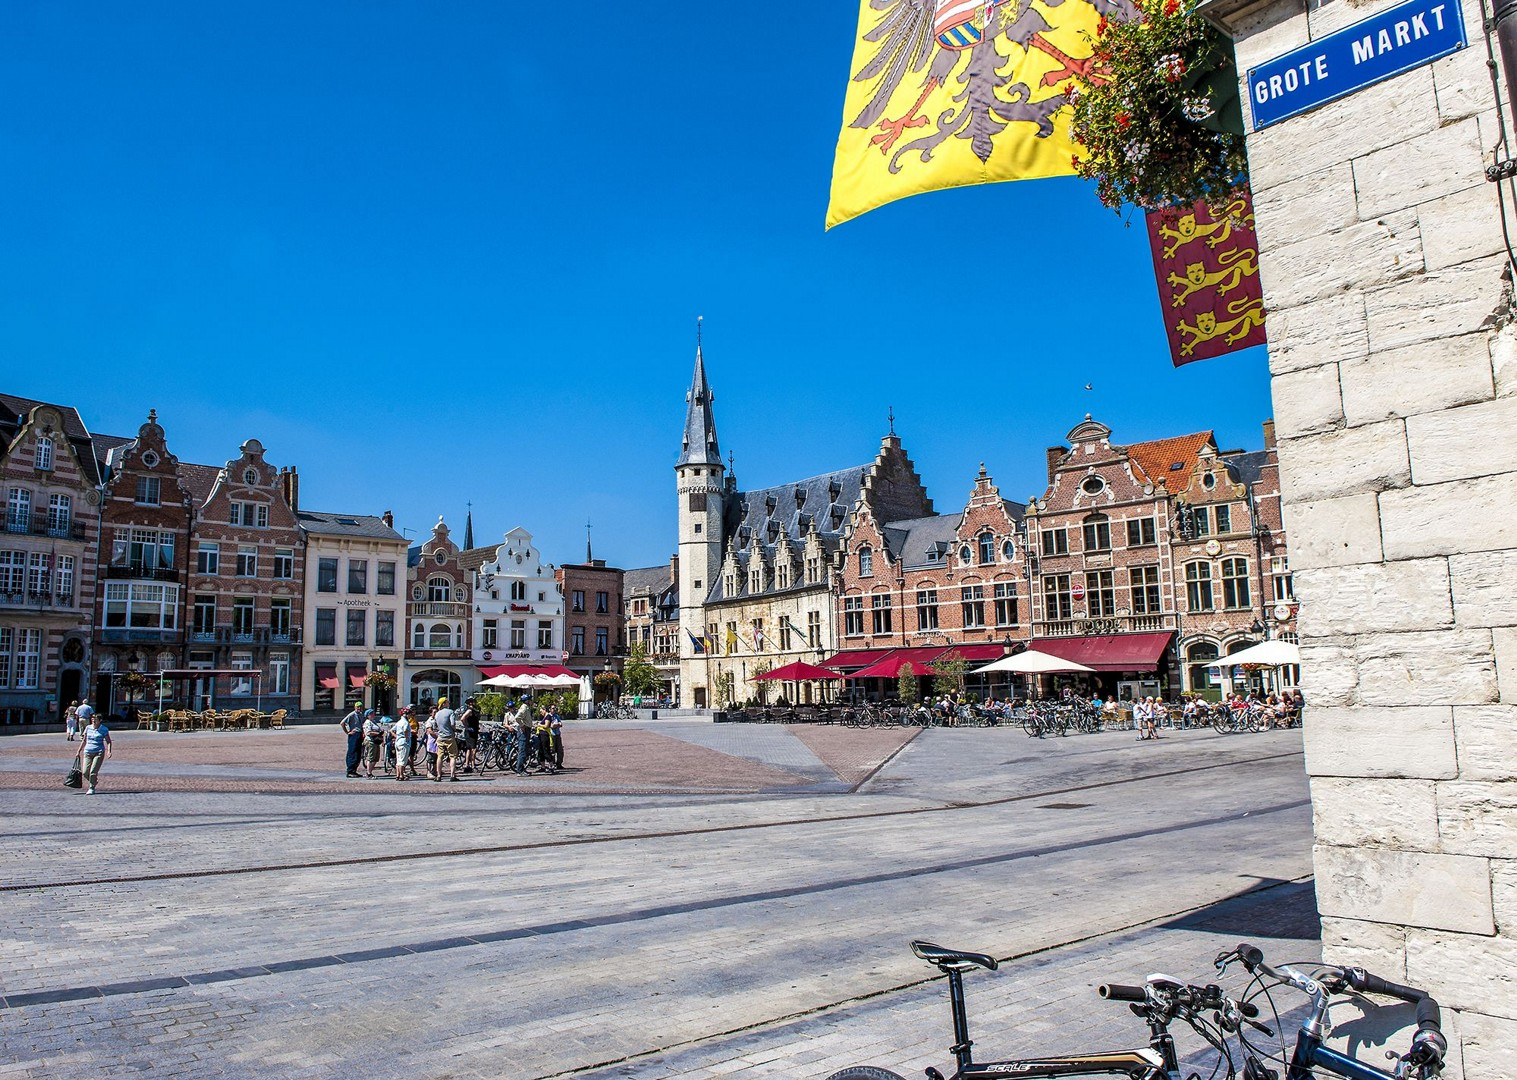 cycle-tours-holland-belgium-grote-markt-culture-food.jpg - Holland and Belgium - Amsterdam to Bruges - Leisure Cycling